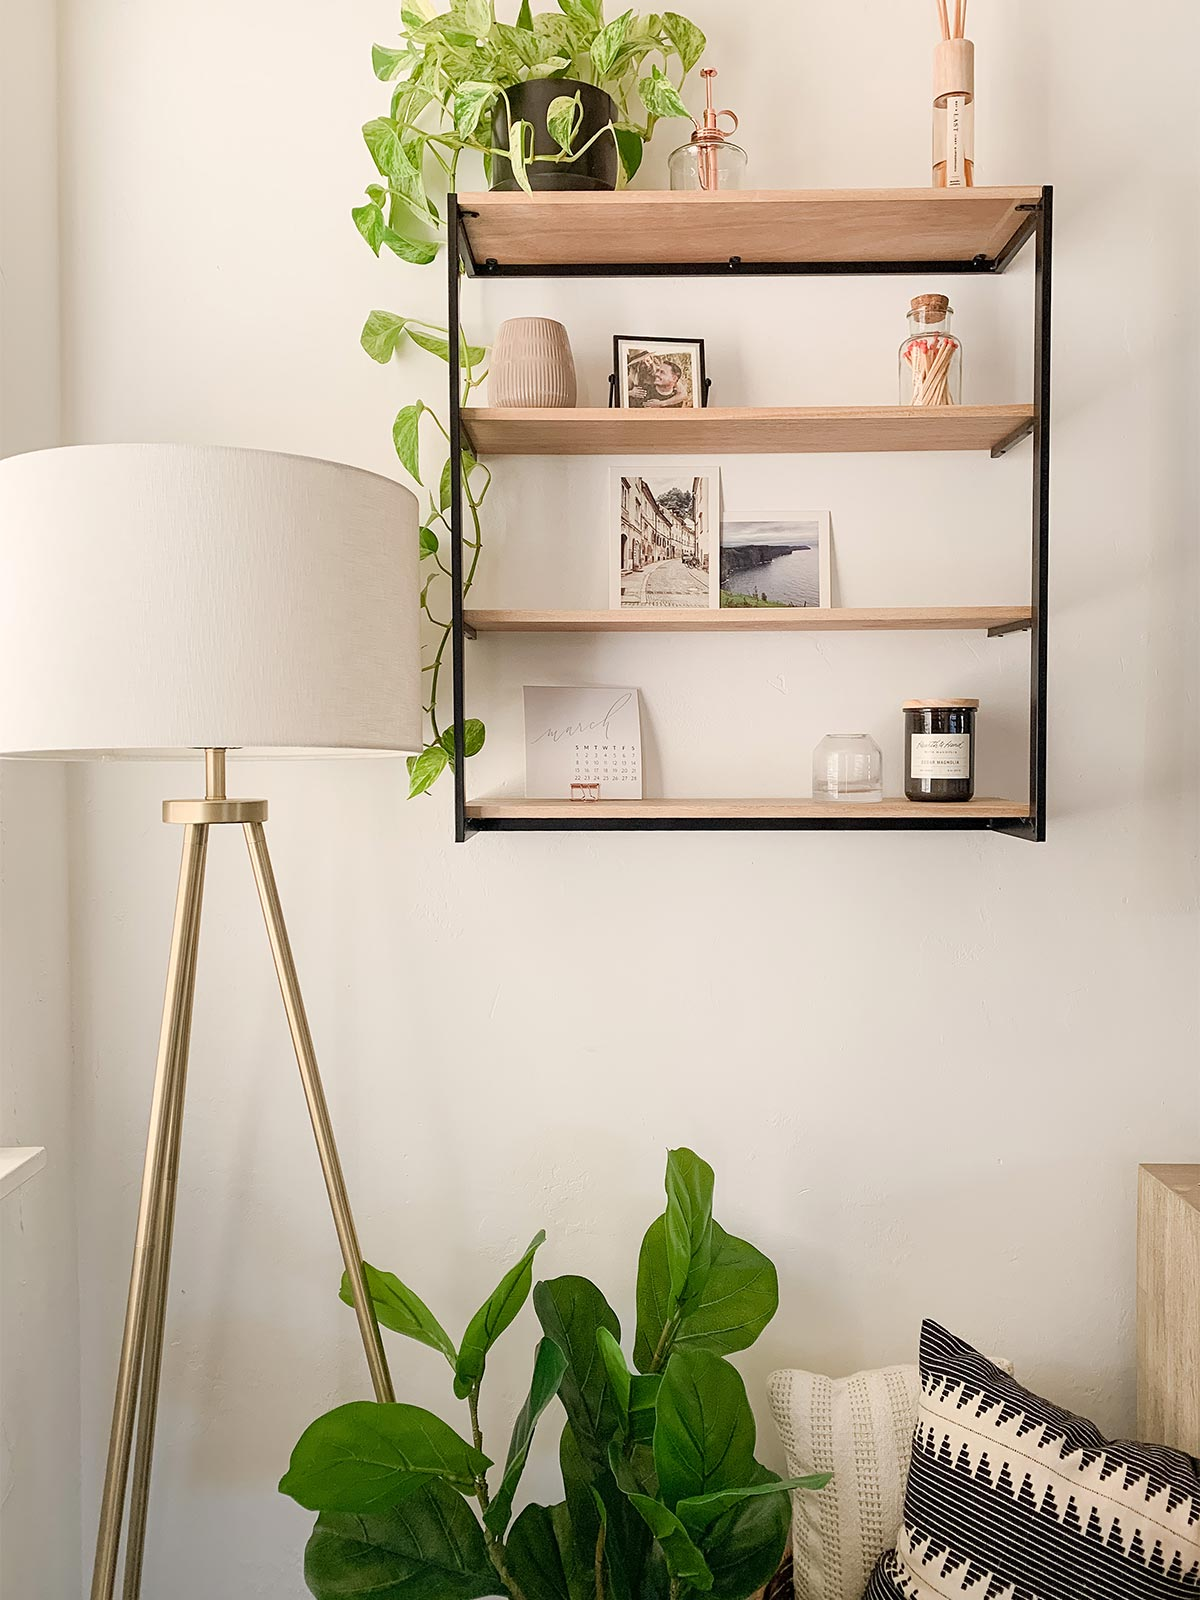 Floating bookshelf lined with Artifact uprising photo prints, decorative items, and a pothos plant